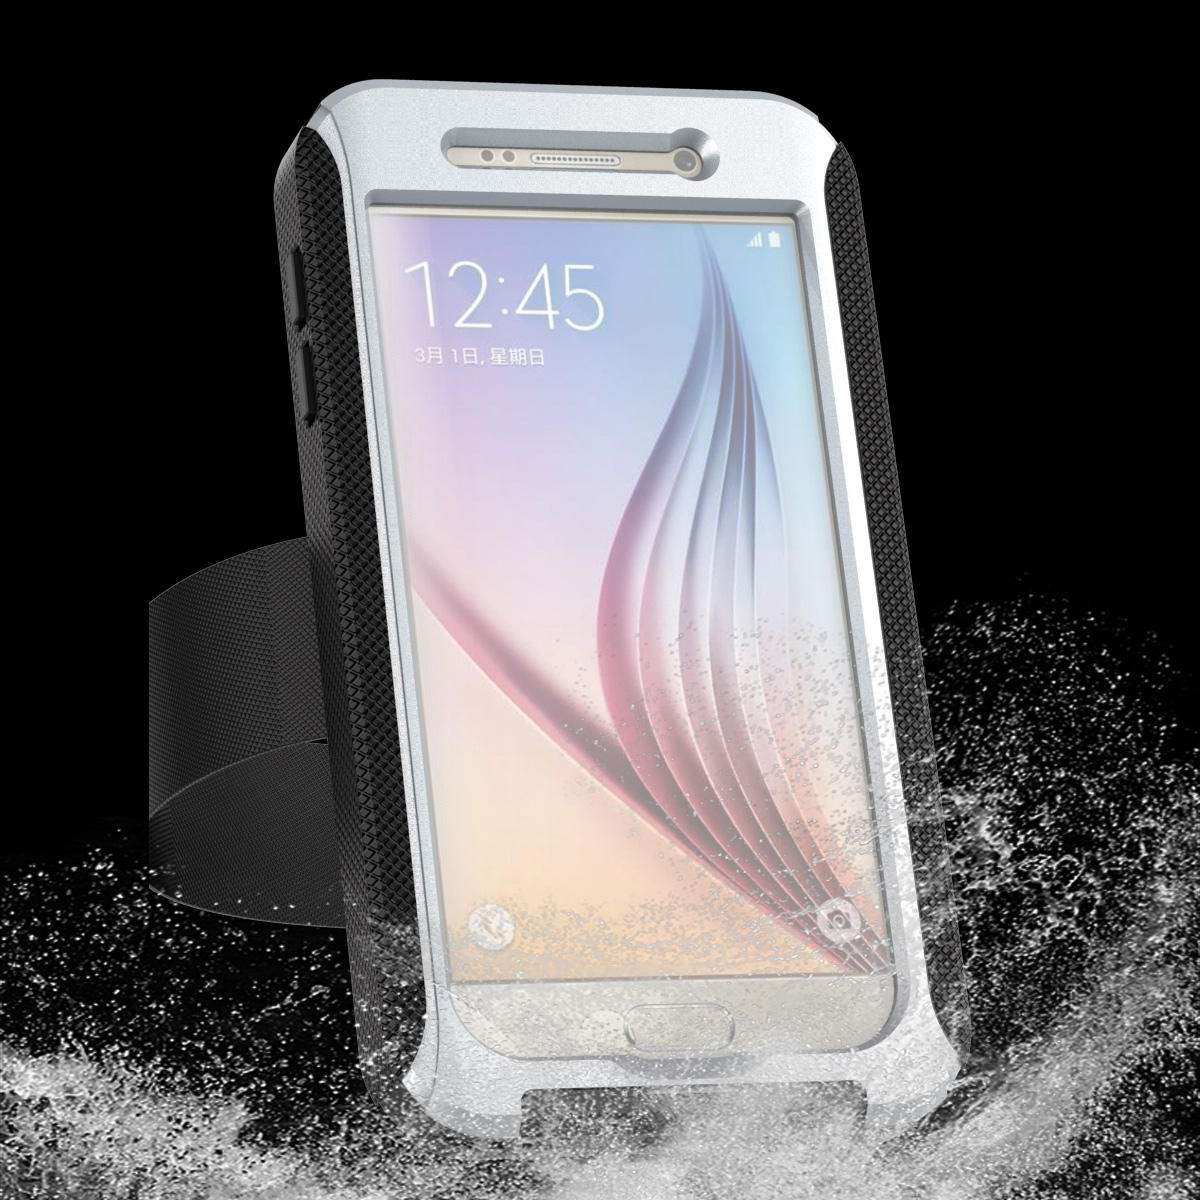 newest b0244 3e650 AD Series IPX68 Waterproof Heavy Duty Protection Case With Arm Band For  Samsung Galaxy S6